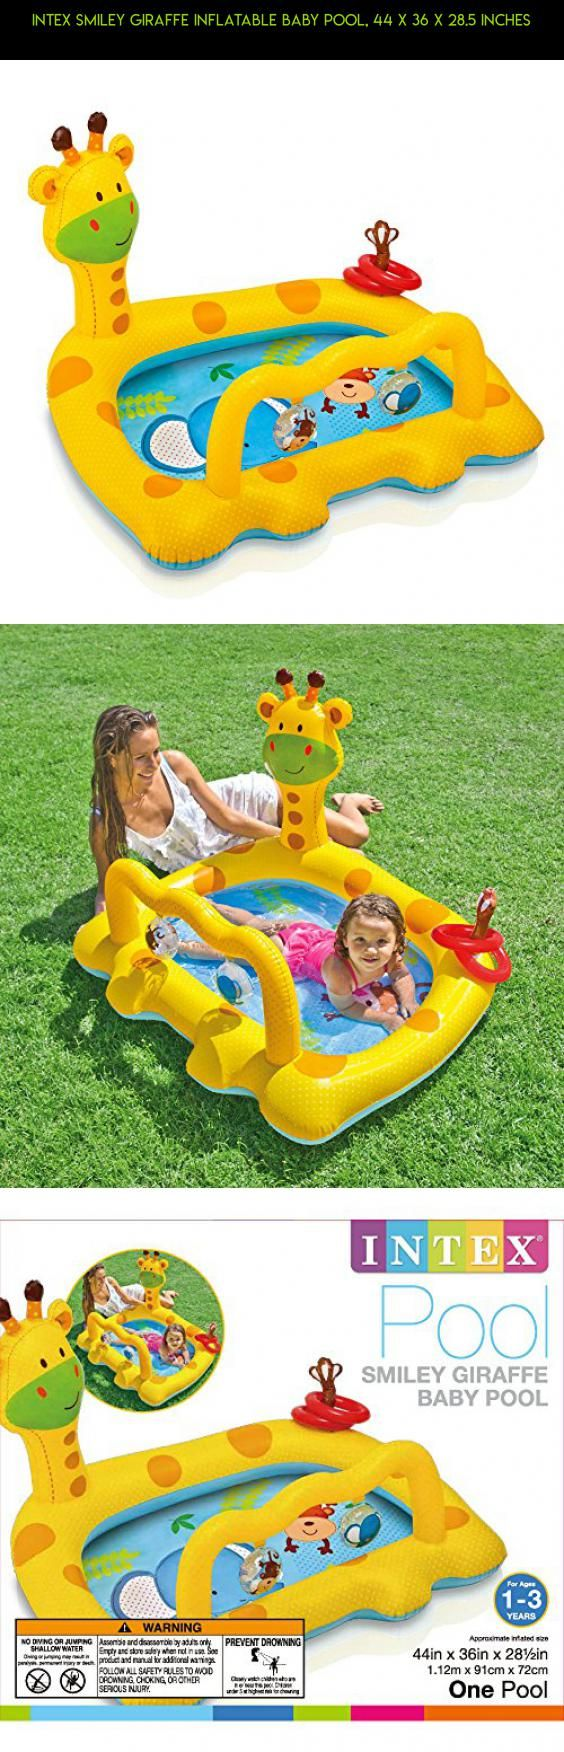 Intex Smiley Giraffe Inflatable Baby Pool, 44 x 36 x 28.5 Inches #pools #camera #technology #plans #kit #parts #racing #gadgets #tech #drone #fpv #shopping #products #inflatable #baby